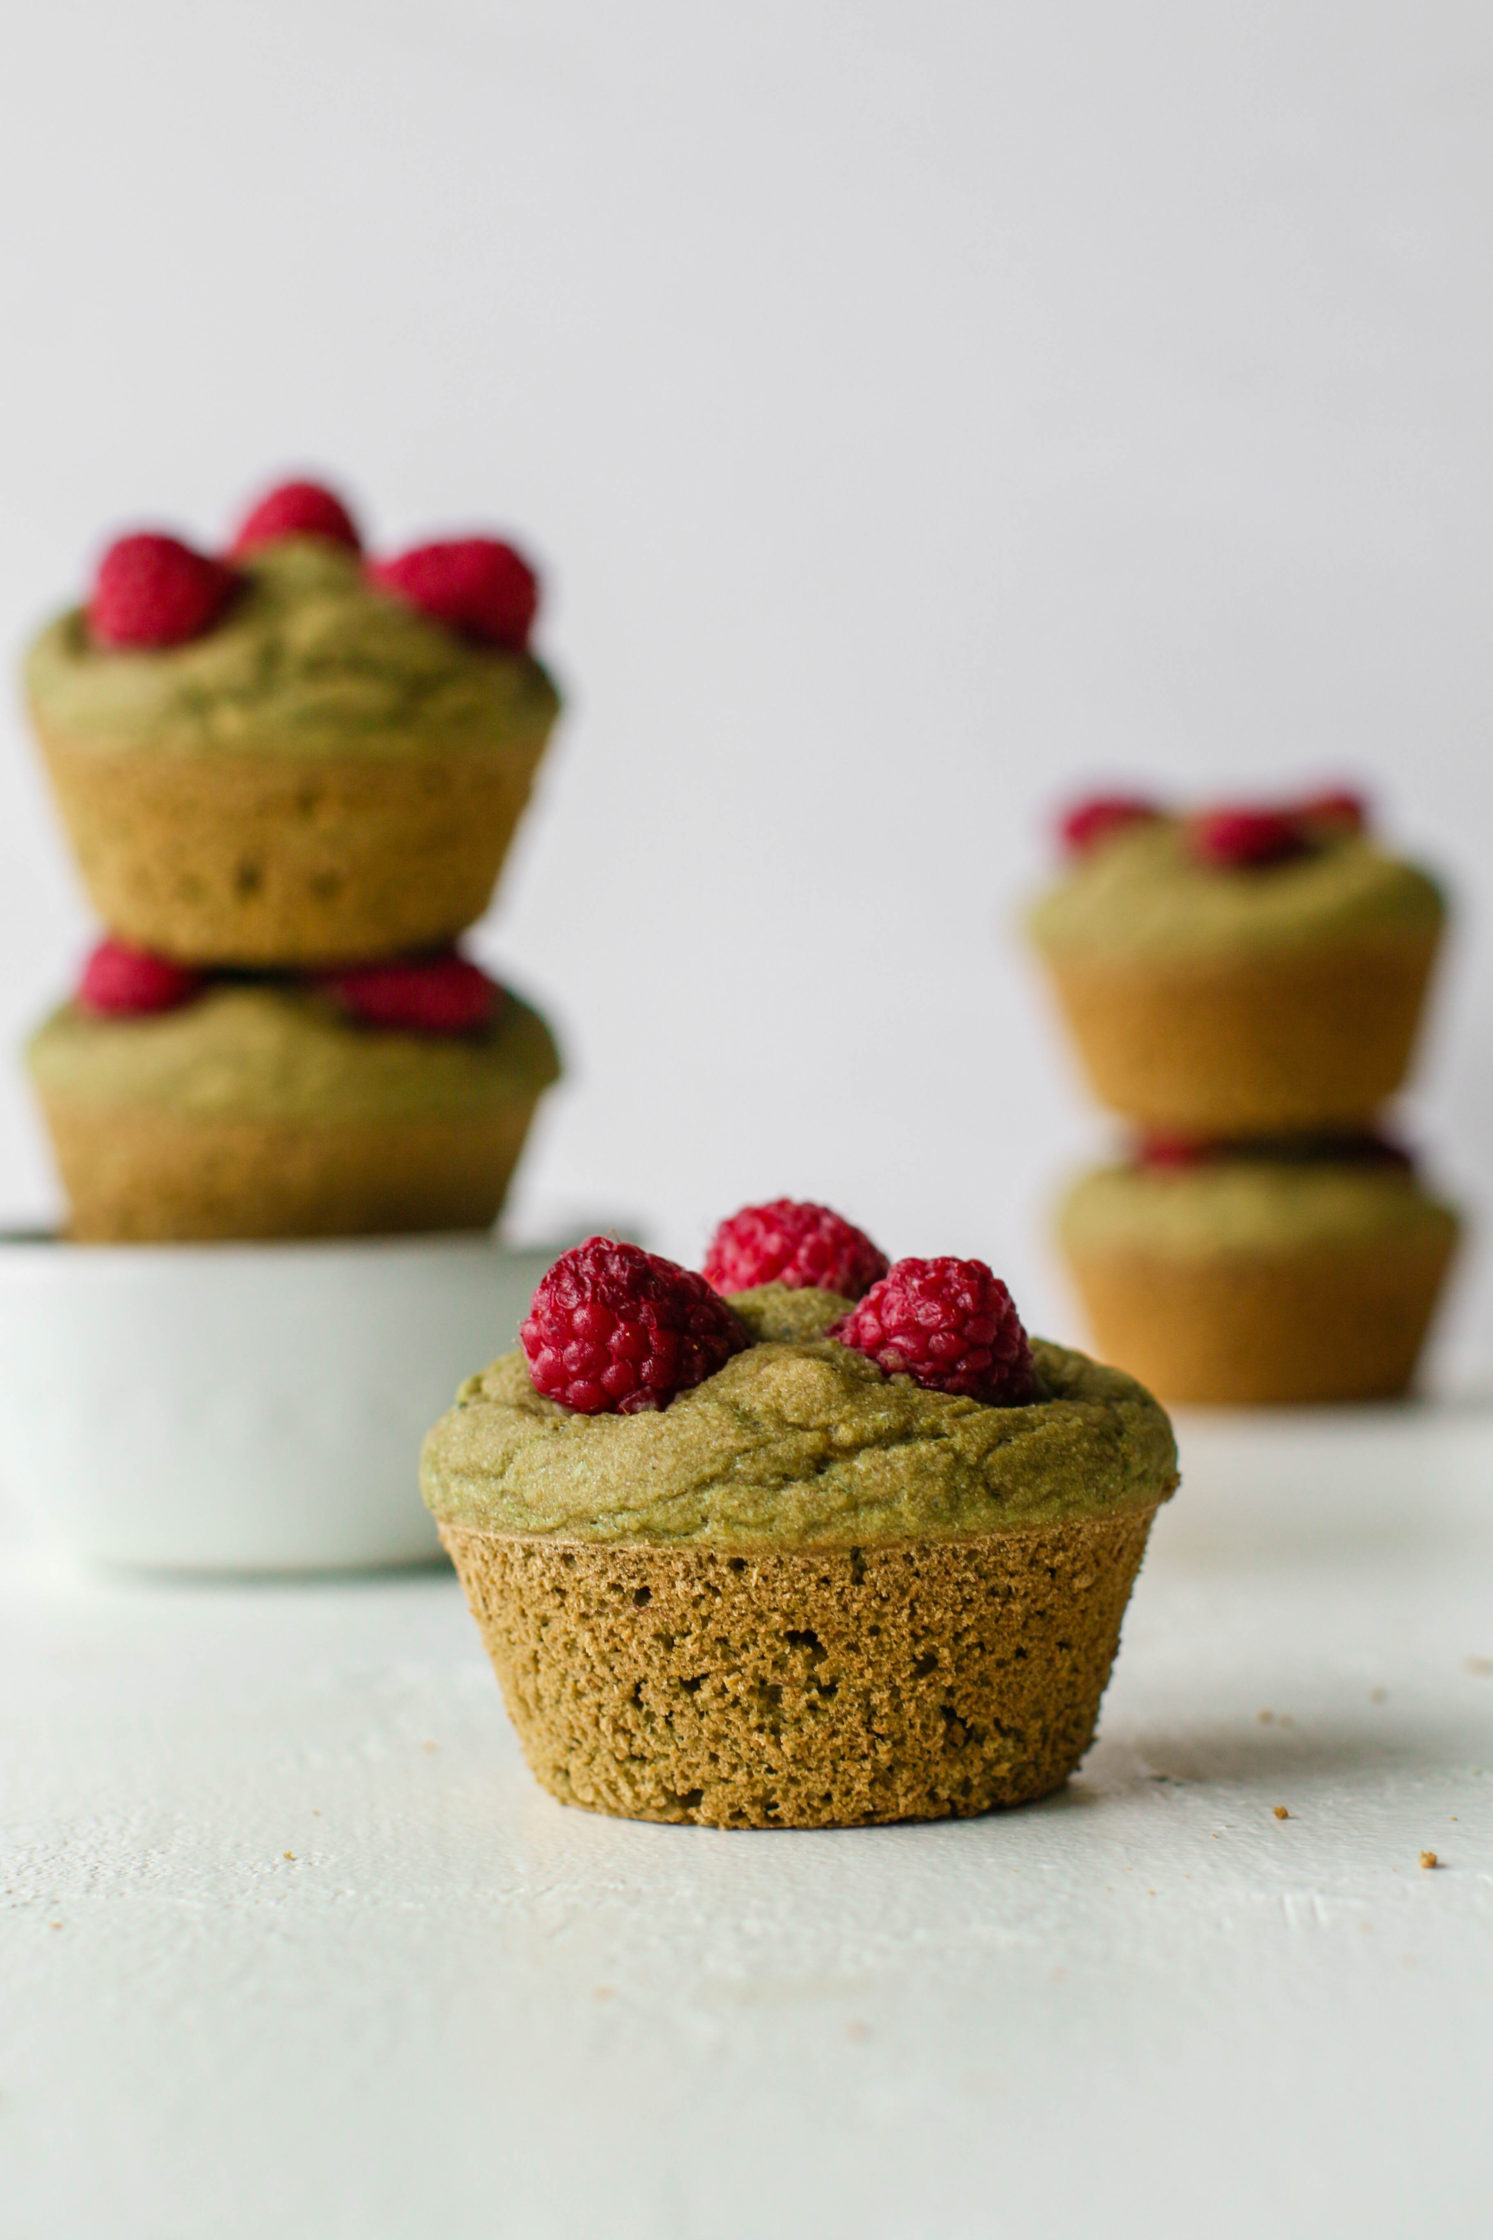 1-Bowl Matcha Muffins with Raspberries by Flora & Vino